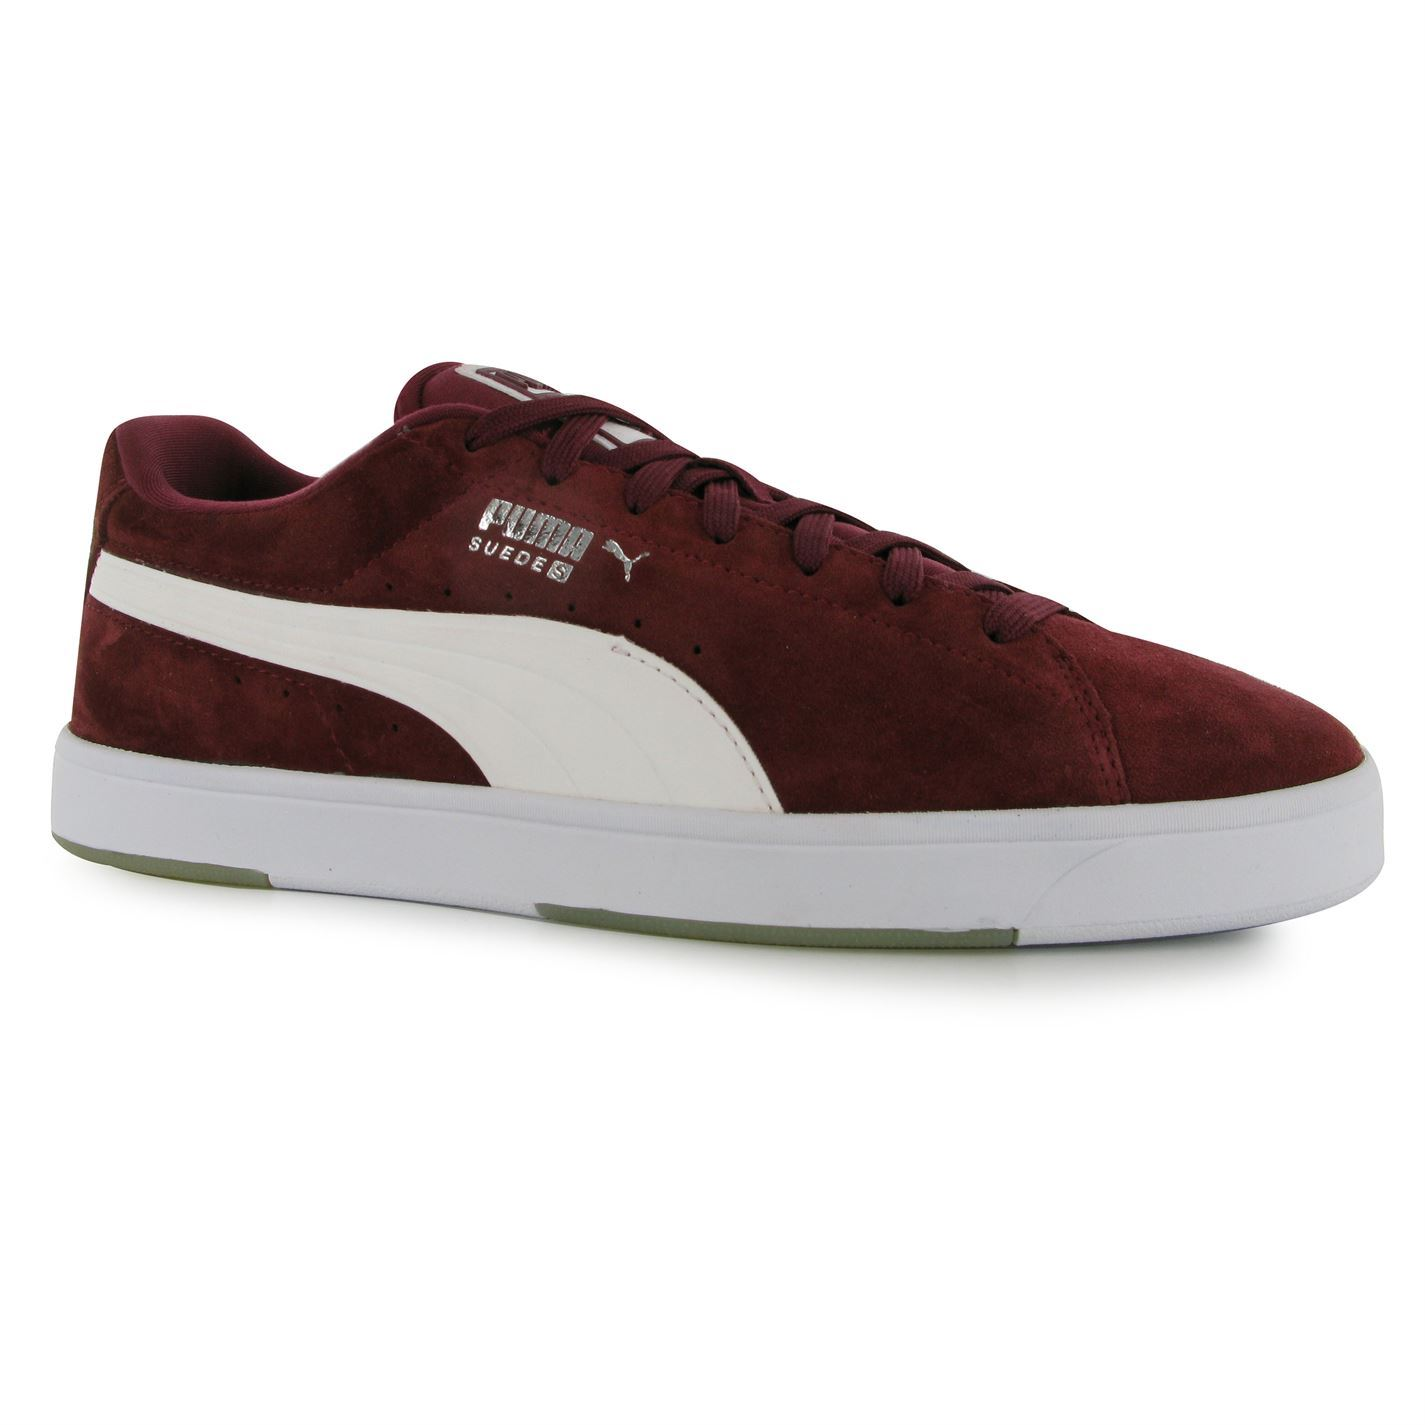 ... Puma Suede S Trainers Mens Burgundy White Casual Sneakers Shoes  Footwear ... f067f1060